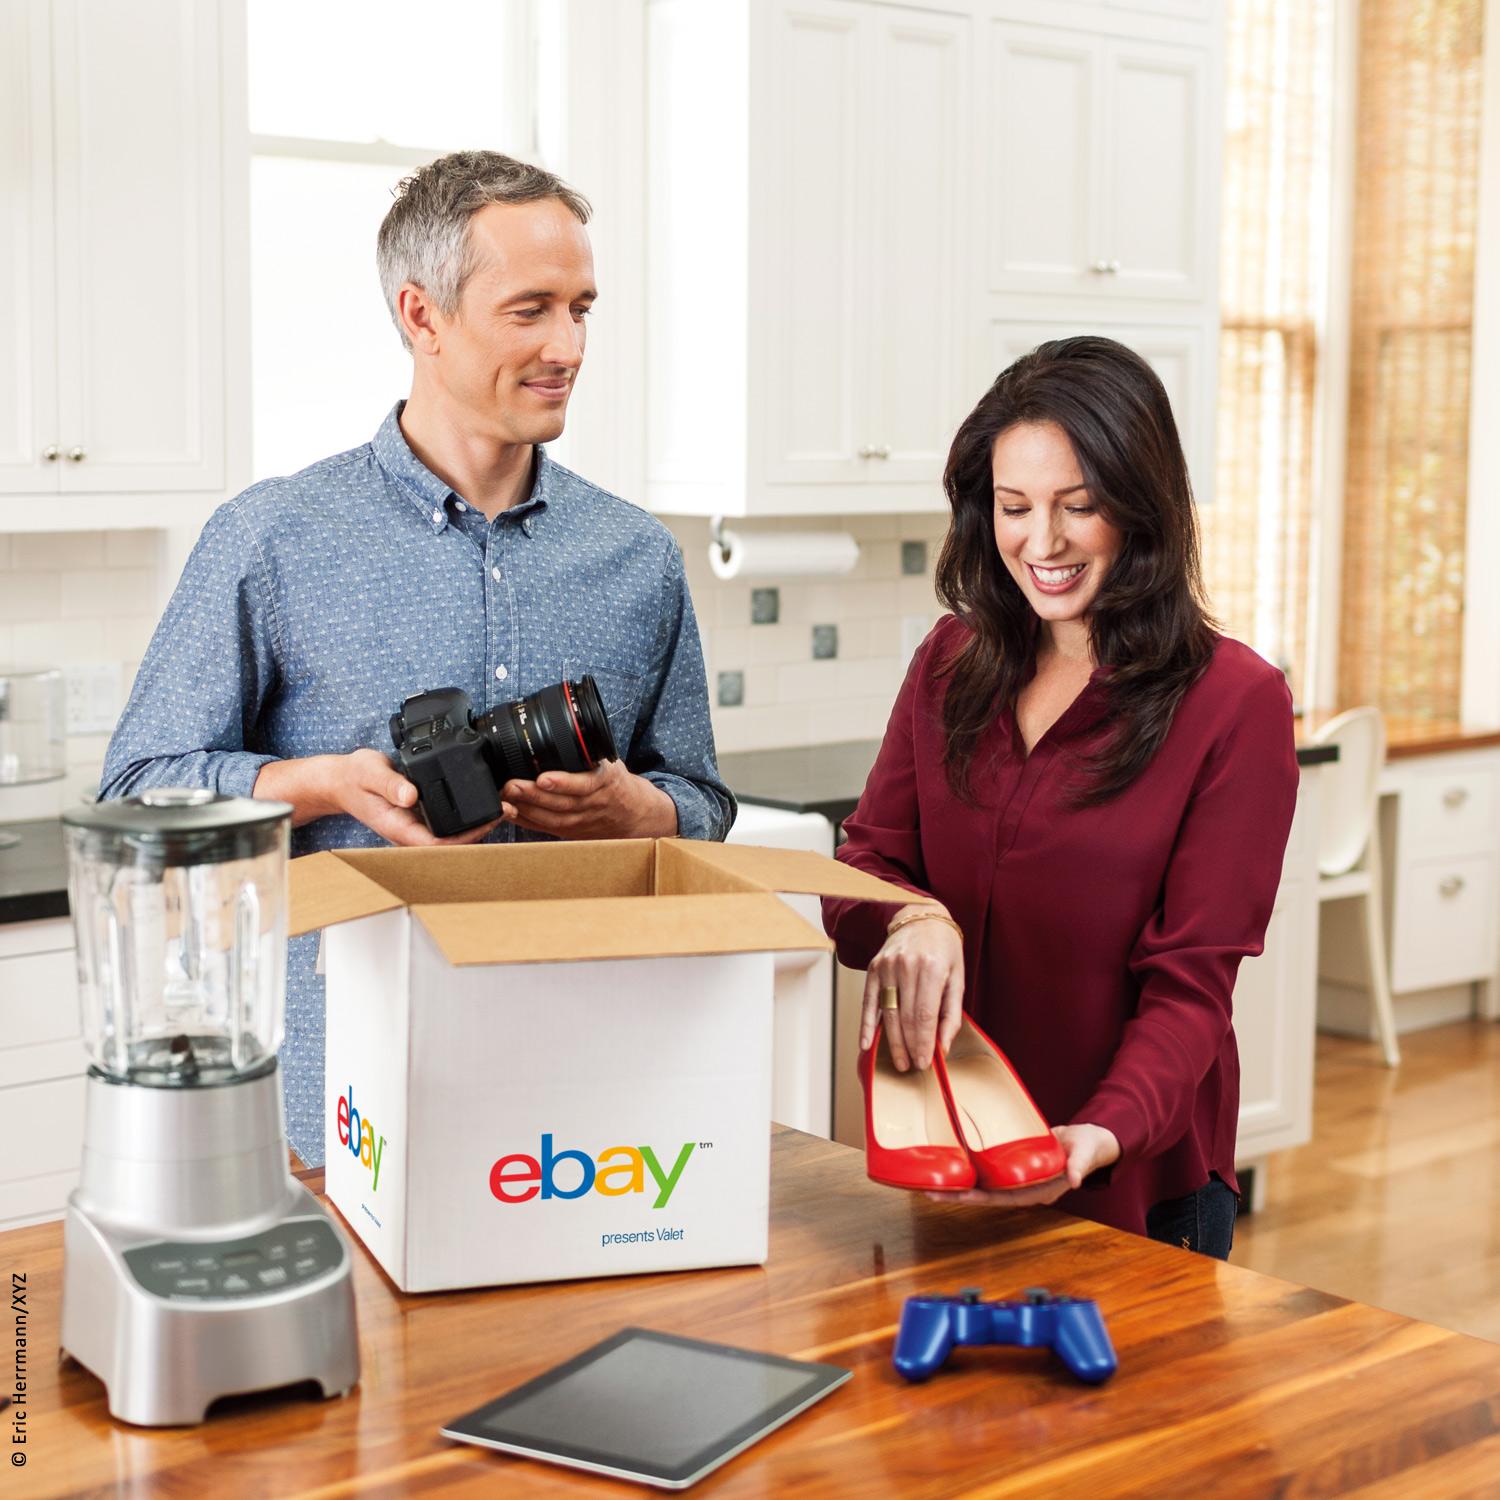 photo of smiling women and man standing in their kitchen packing a camera, blender, high heel shoes , ipad into an eBay valet shipping service box